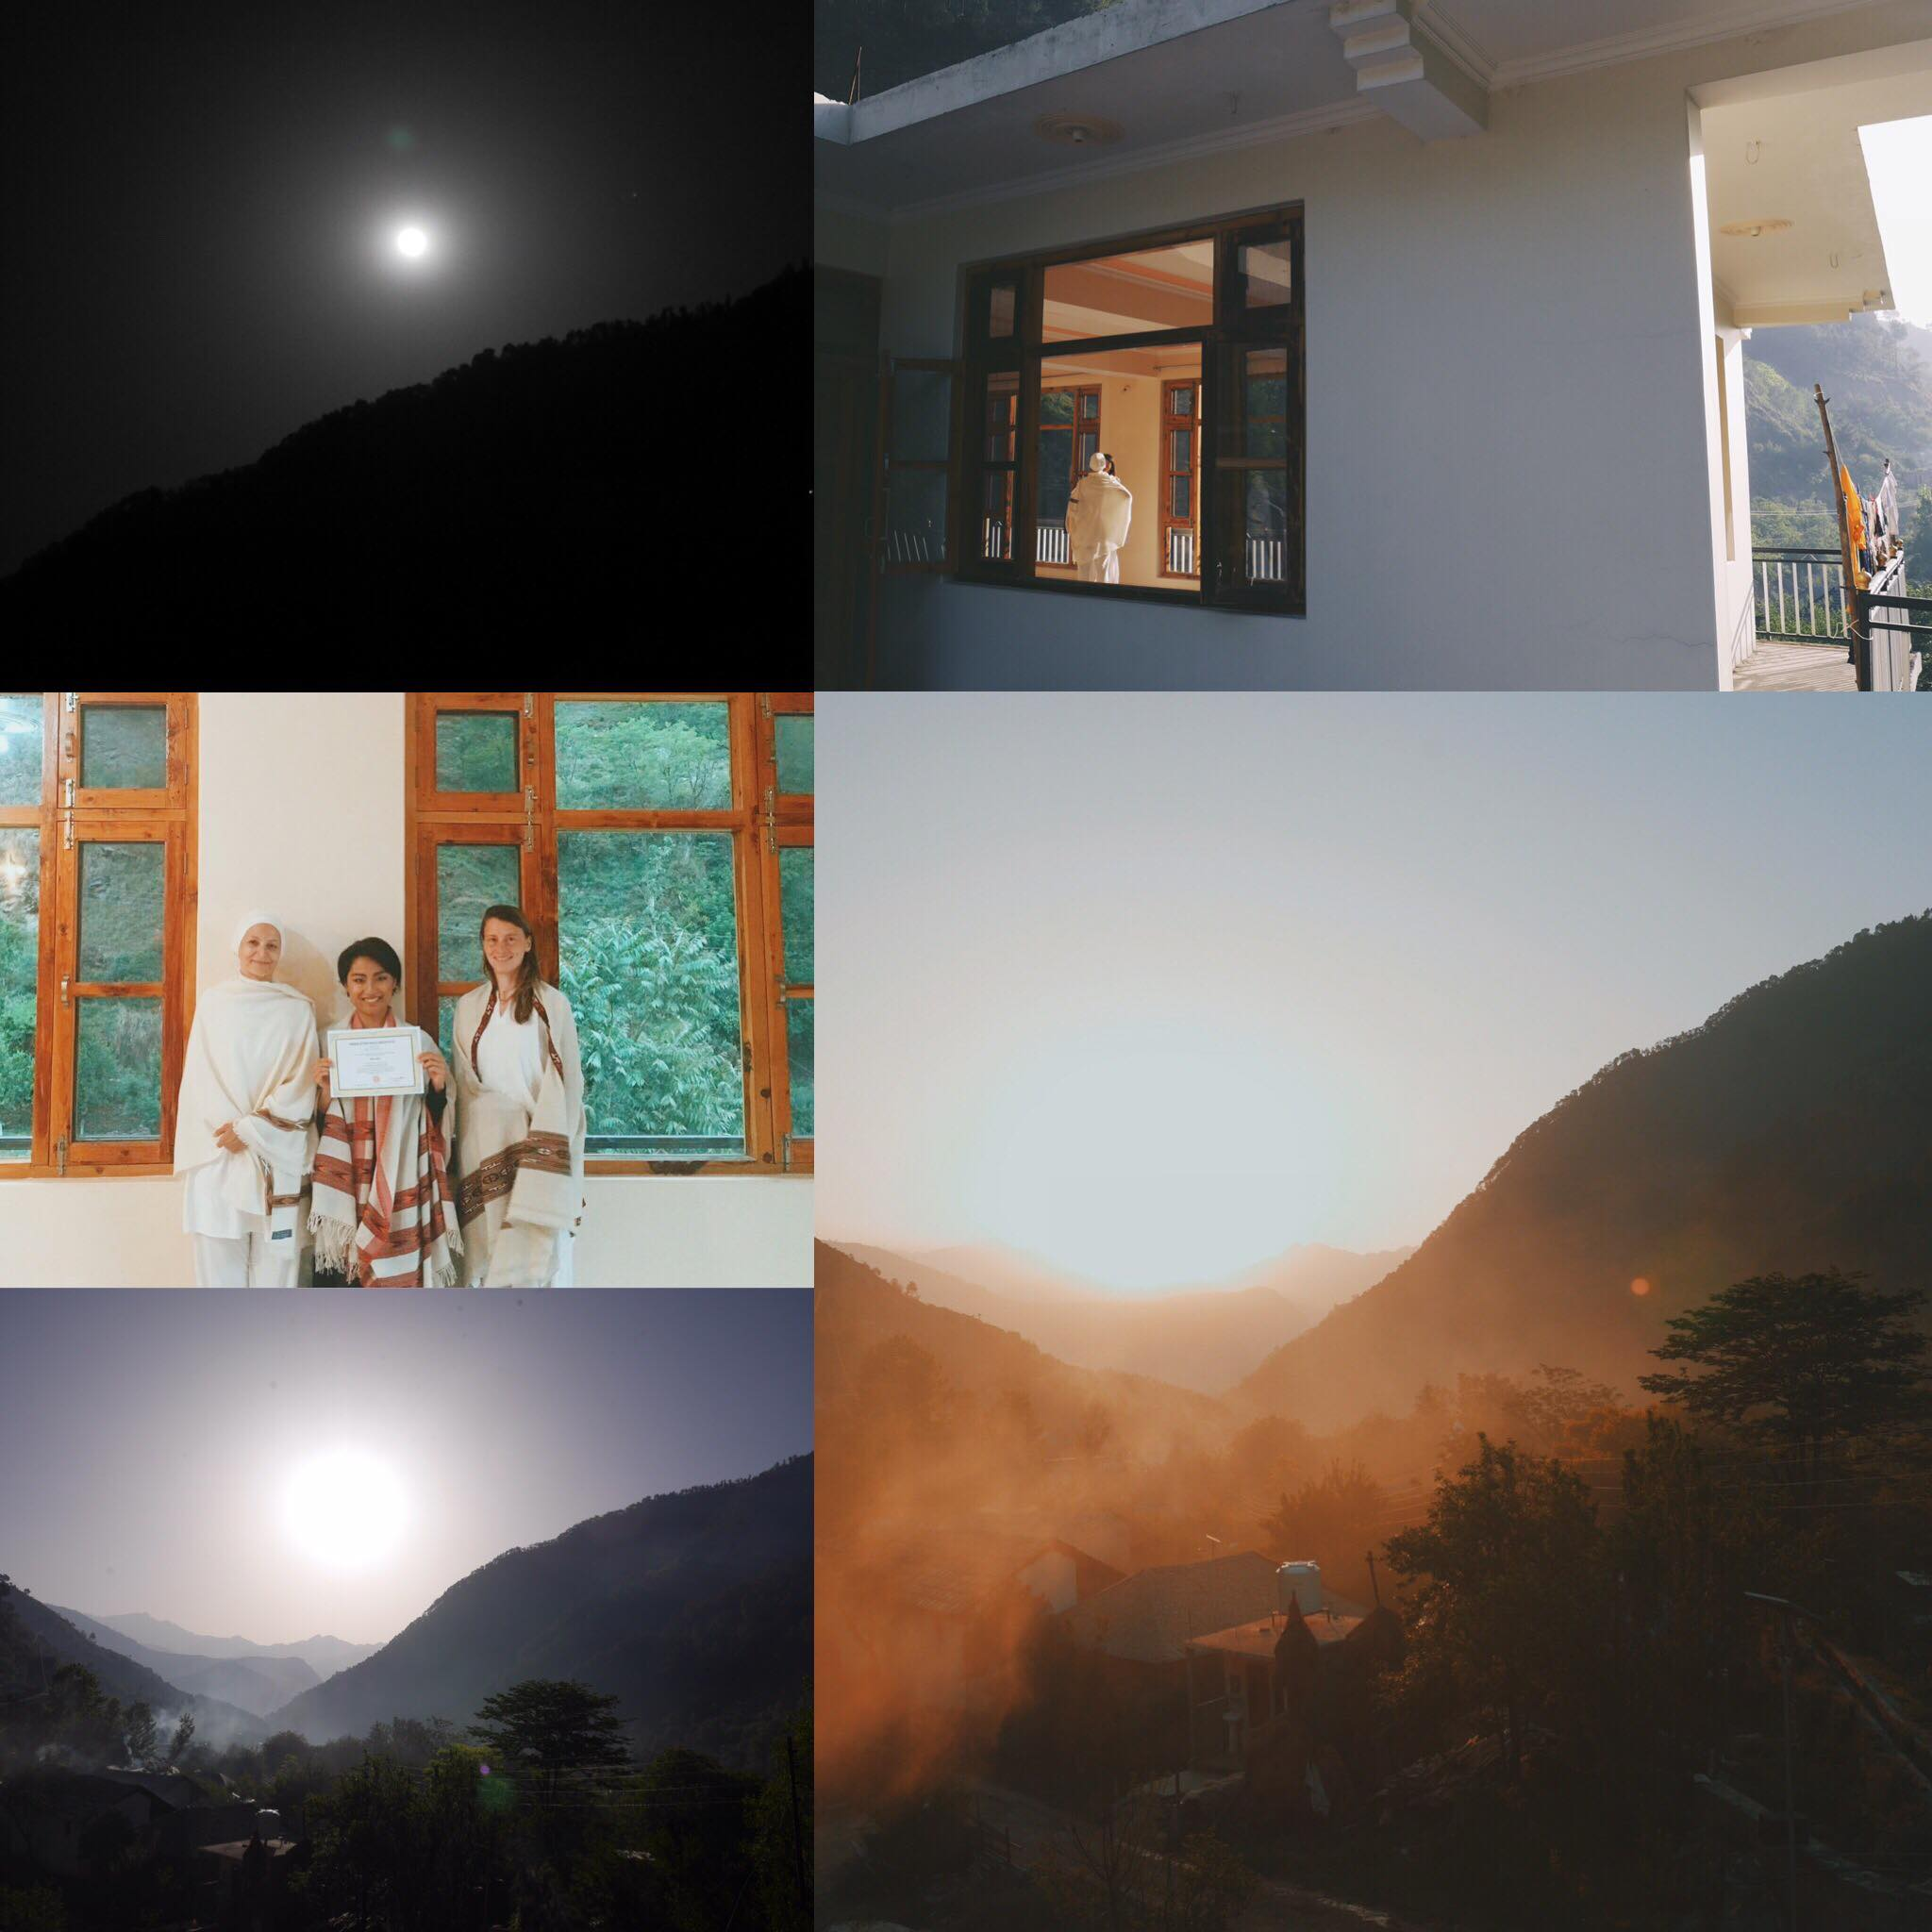 Yoga Alliance Certified 200 HR Teacher Training Course in India in front of the Himalaya Mountains  Everyday we woke up with a cold shower, meditated, chanted mantras and practiced yoga